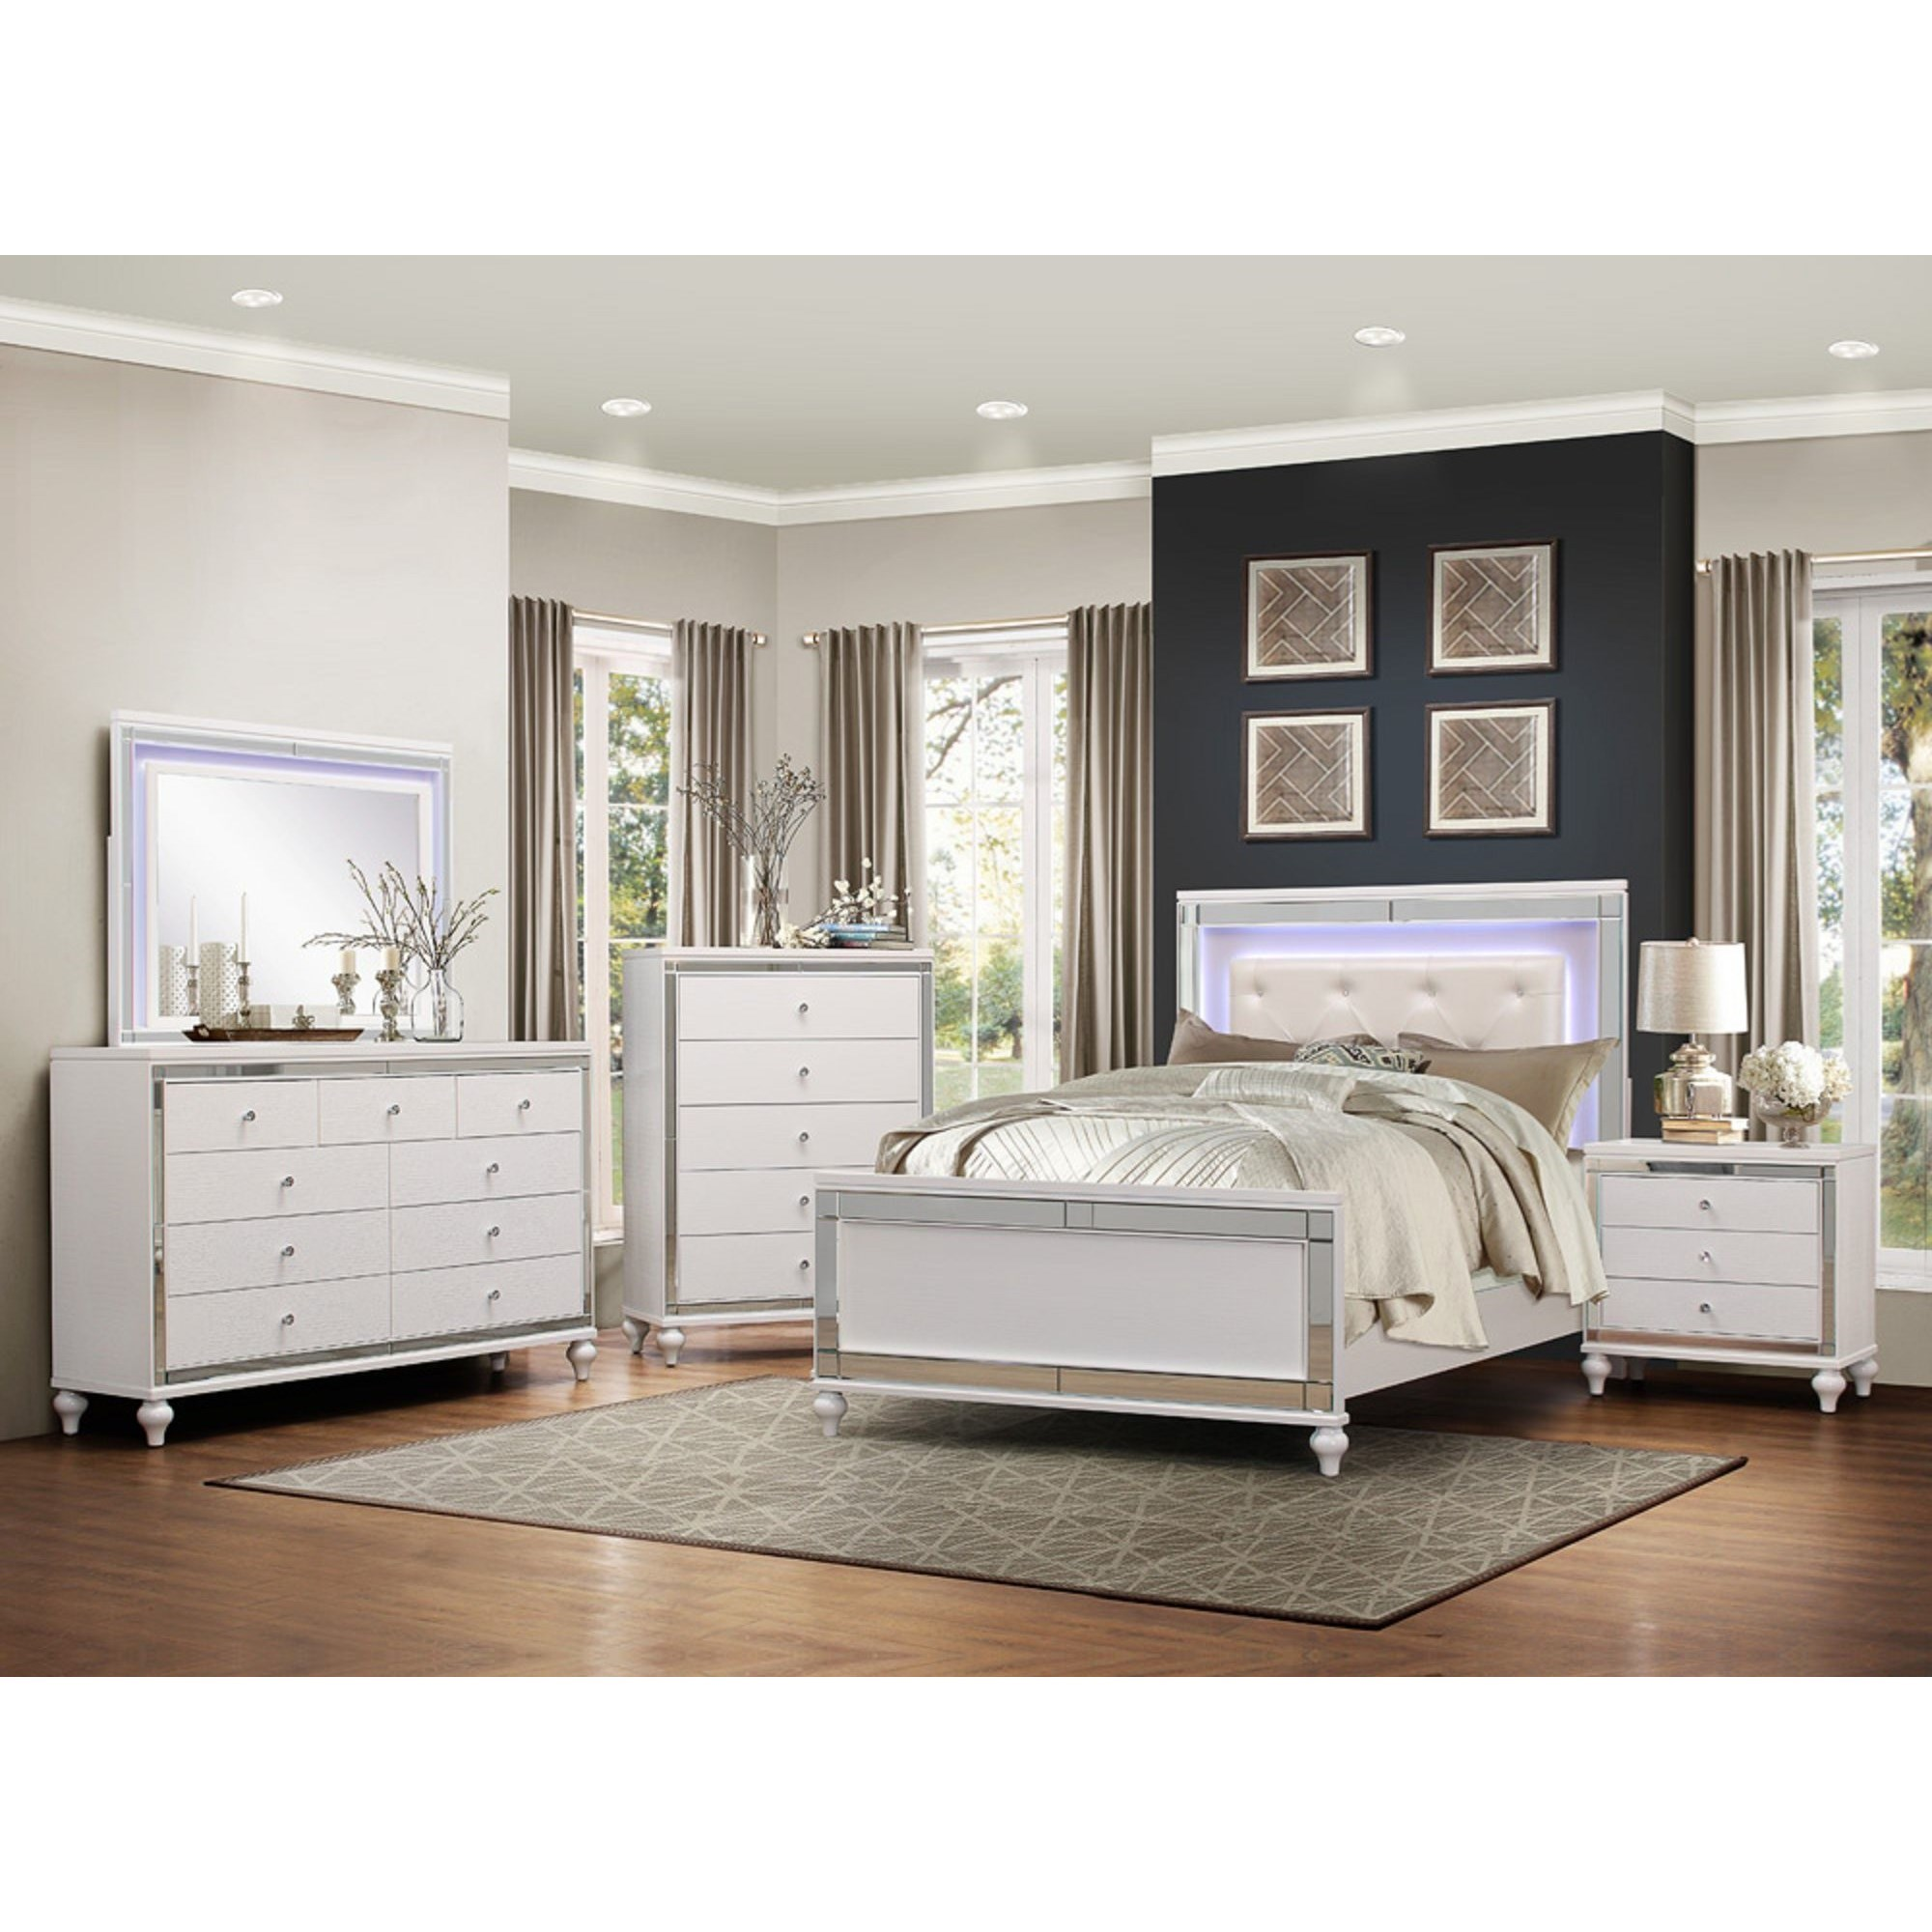 homelegance alonza glam cal king led lit bedroom group darvin furniture bedroom groups. Black Bedroom Furniture Sets. Home Design Ideas